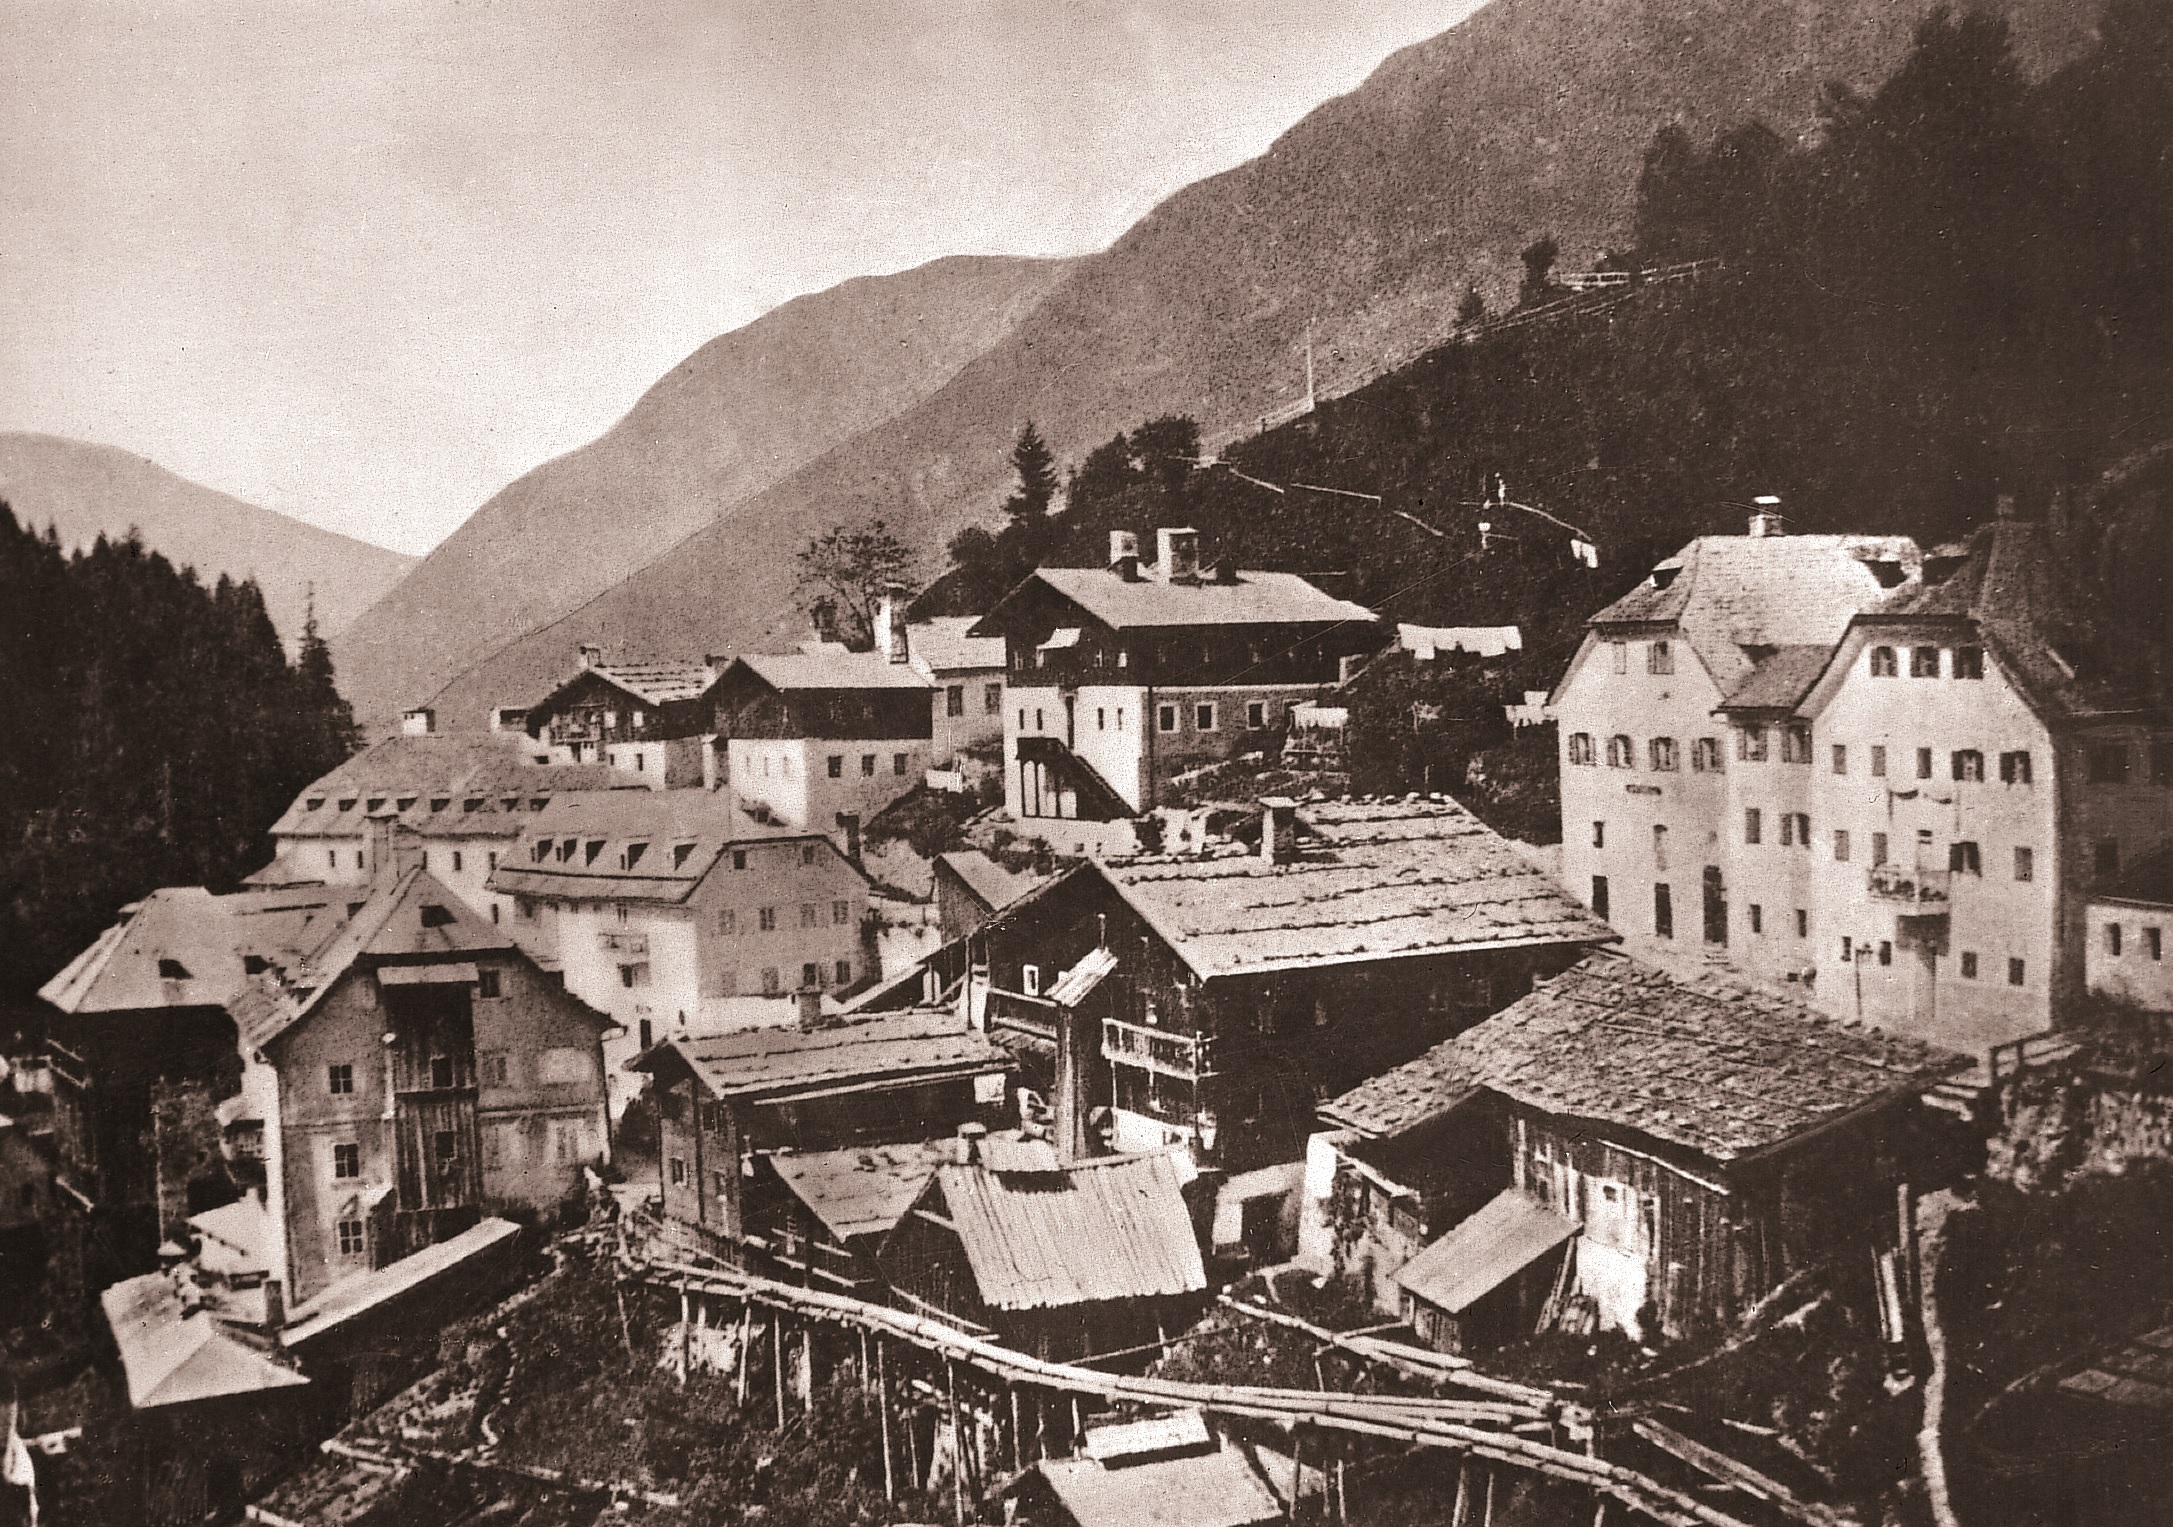 Thermalwasserleitungen in Bad Gastein